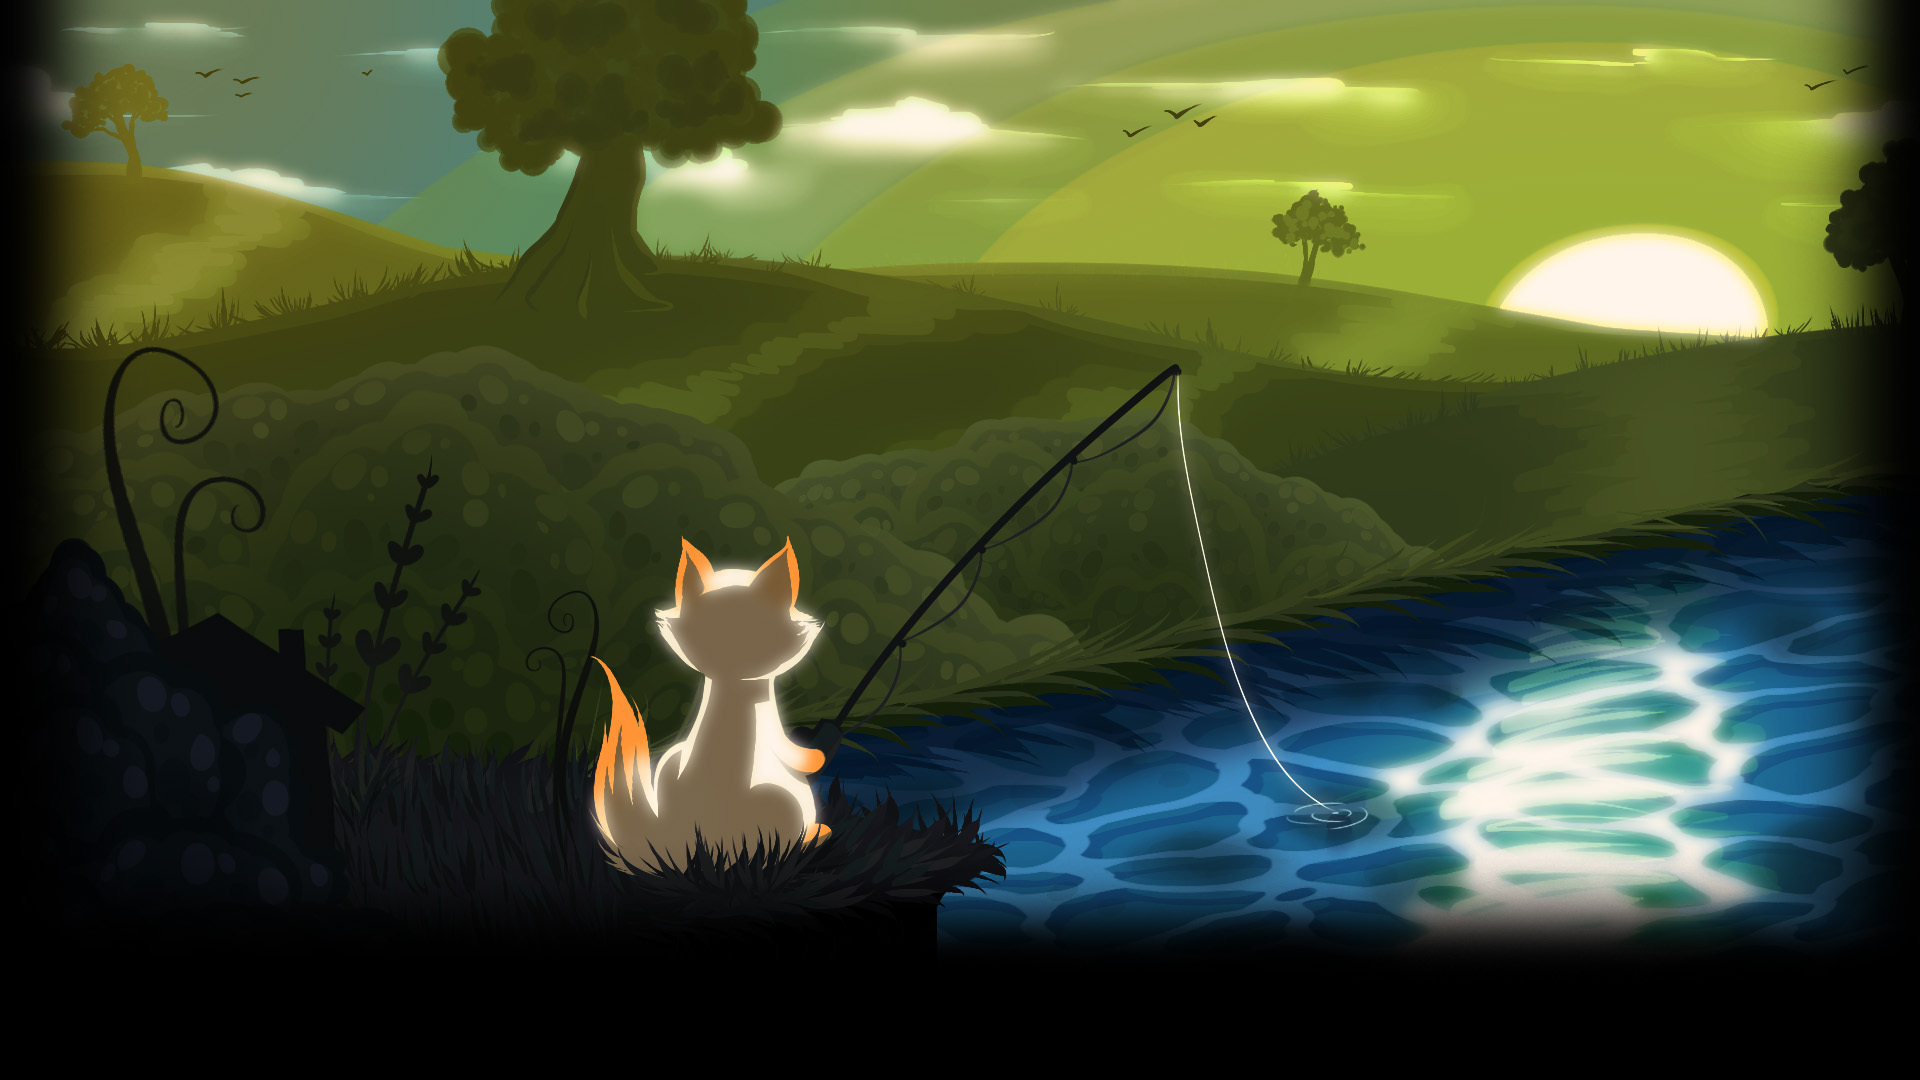 Car Wallpaper Slideshow 3 Cat Goes Fishing Hd Wallpapers Backgrounds Wallpaper